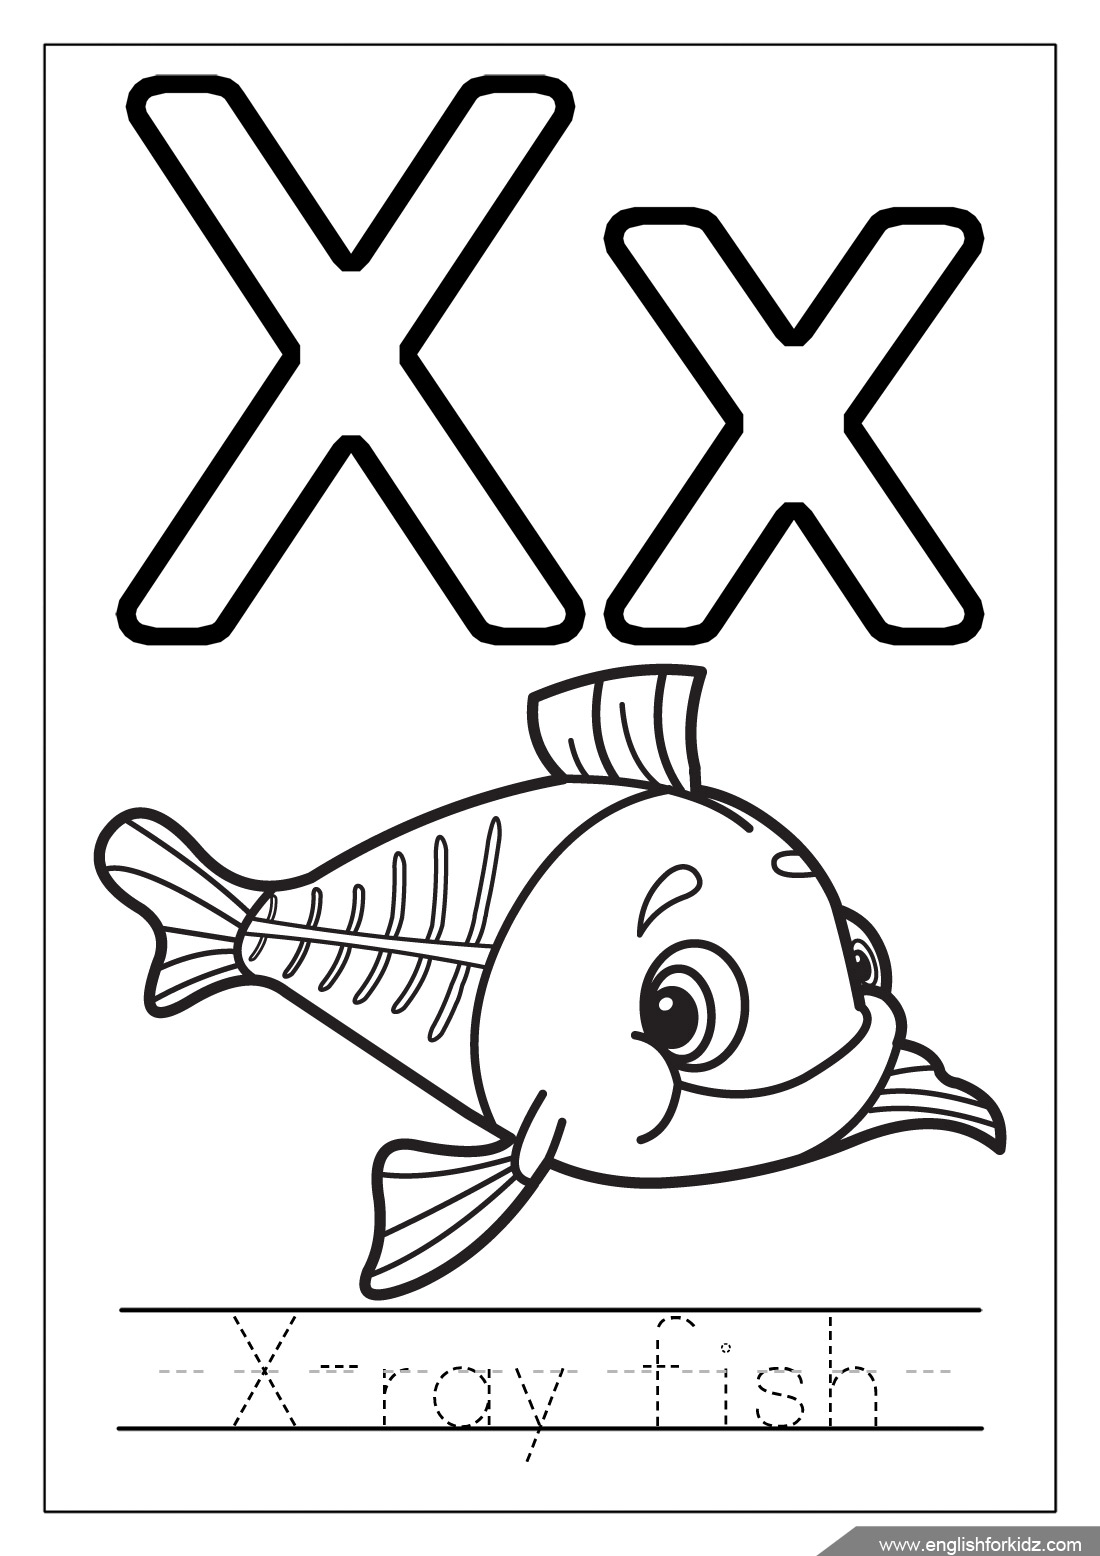 X Ray Fish Coloring Page Alphabet Letter